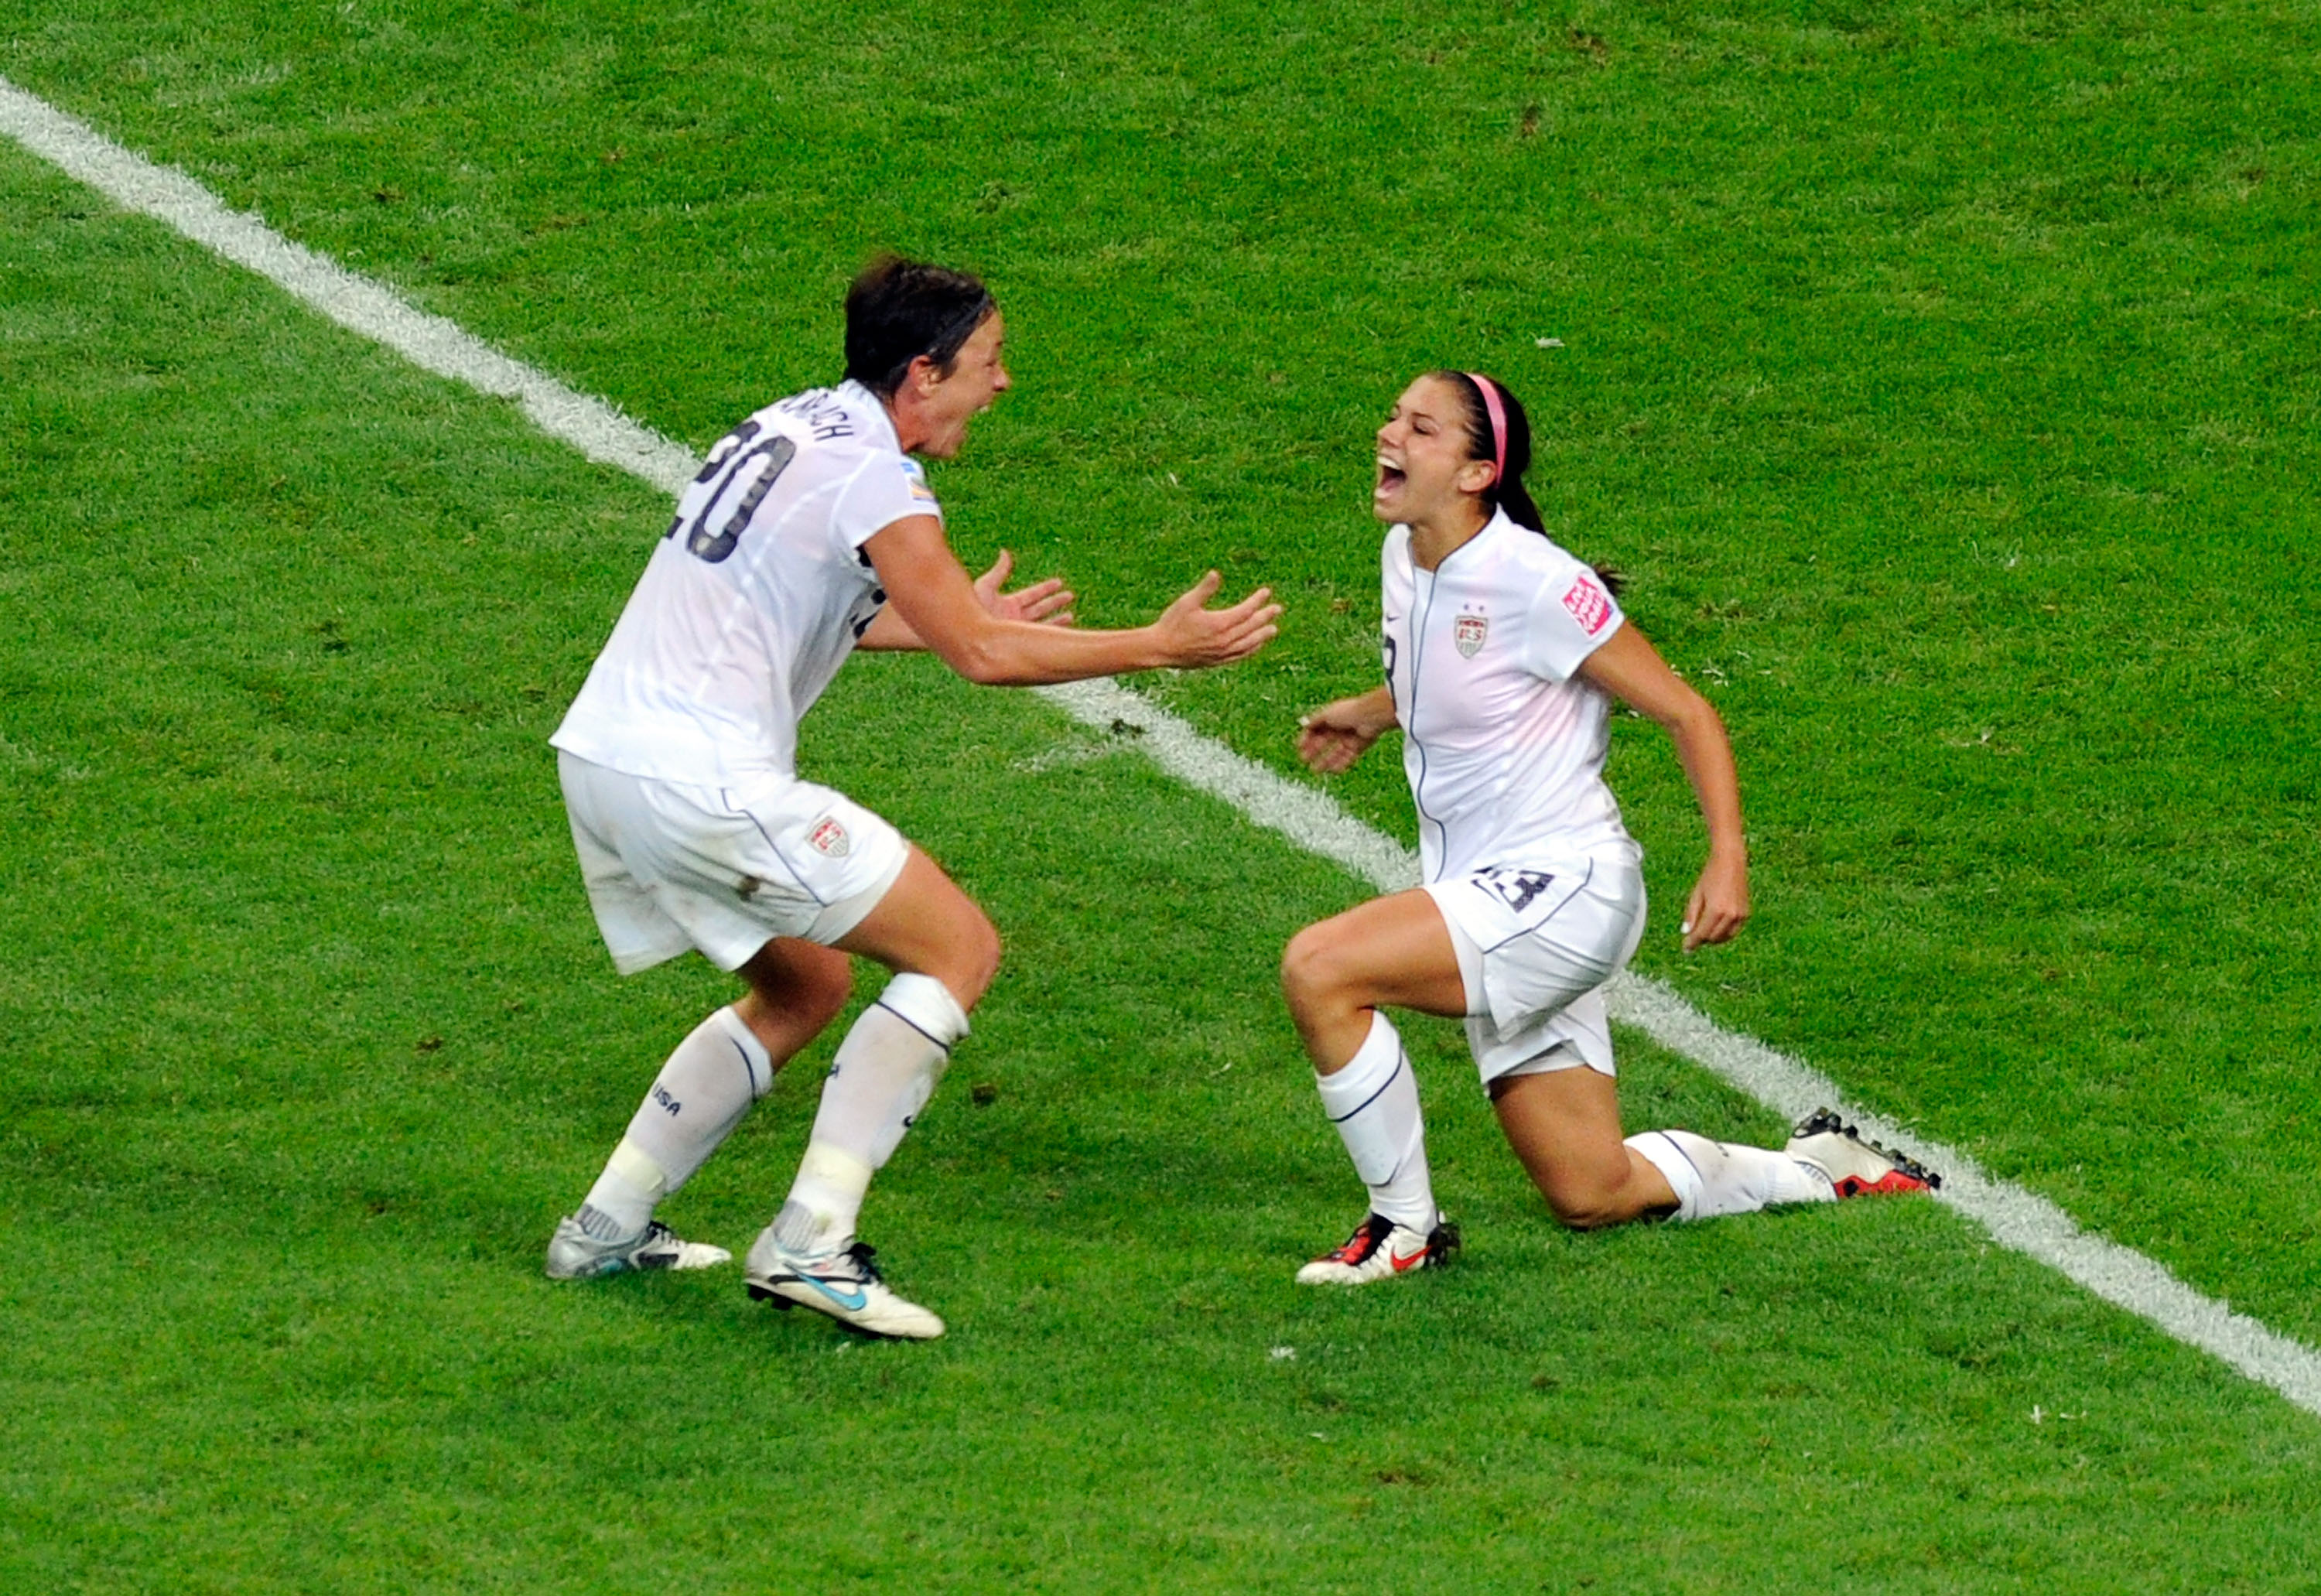 Alex Morgan and Abby Wambach celebrate in the 2011 World Cup final after going up against Japan in extra time.